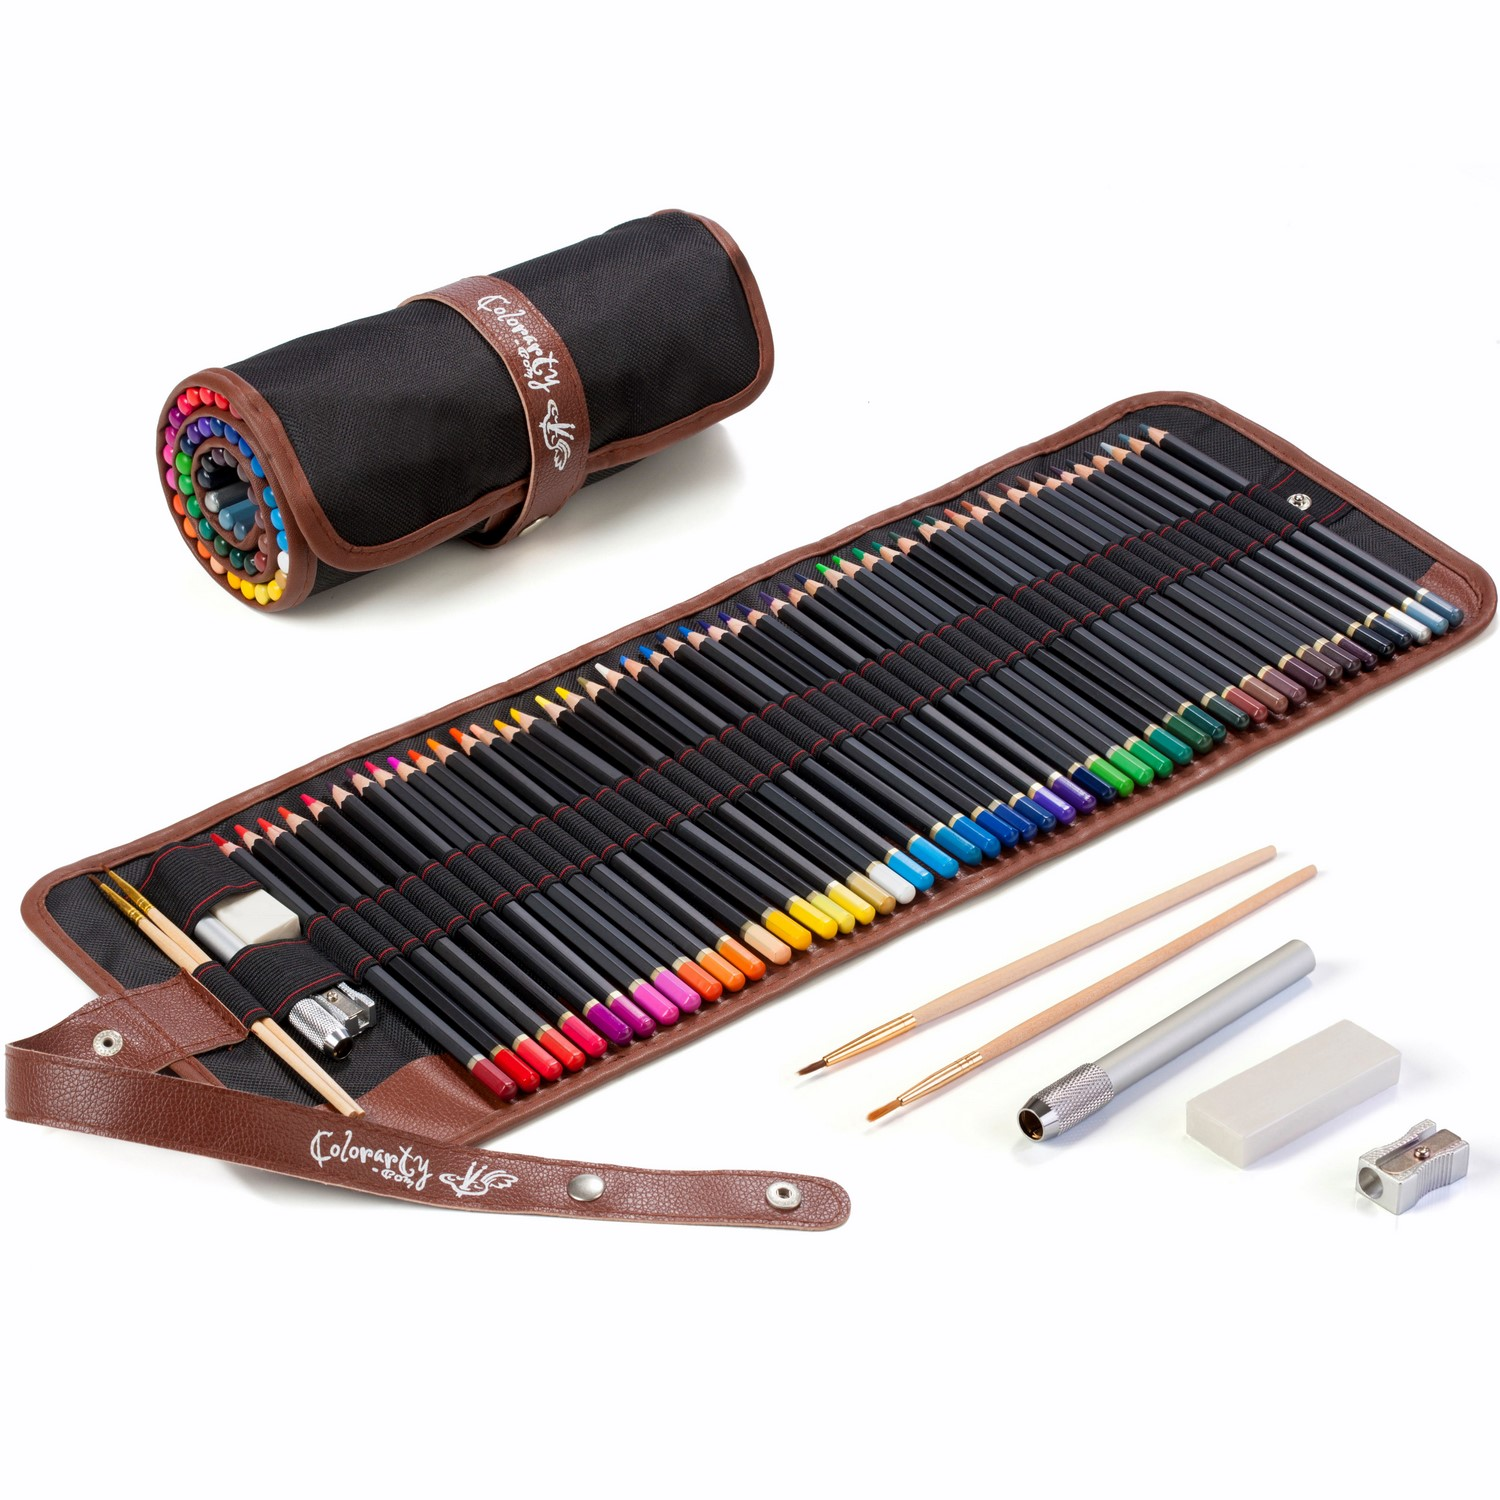 Colorarty 48 professional adult watercolor pencils